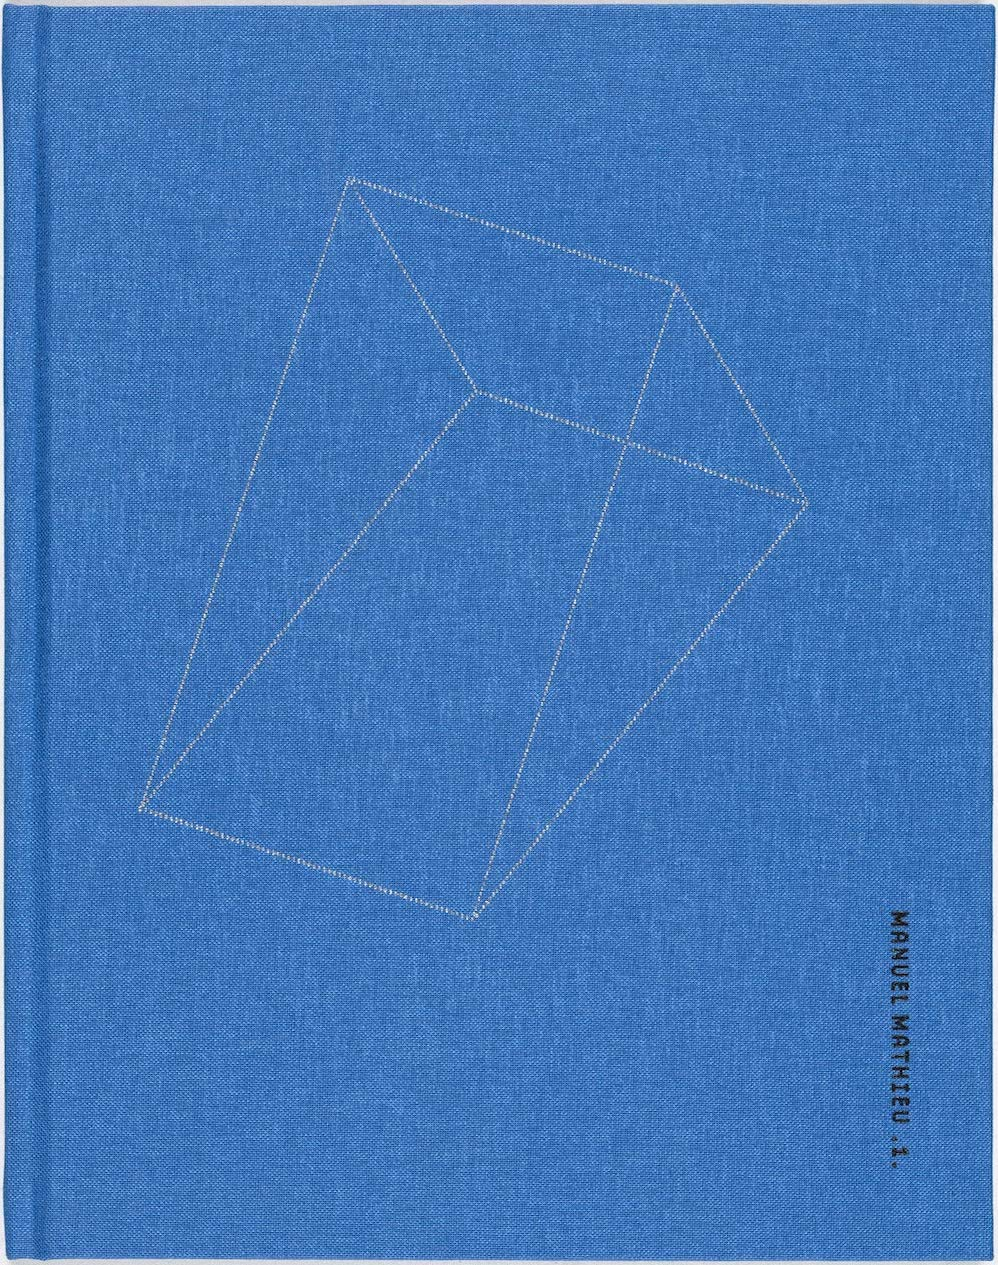 Manuel Mathieu: Recueil Volume #1 - Artist's Book at Kavi Gupta Editions